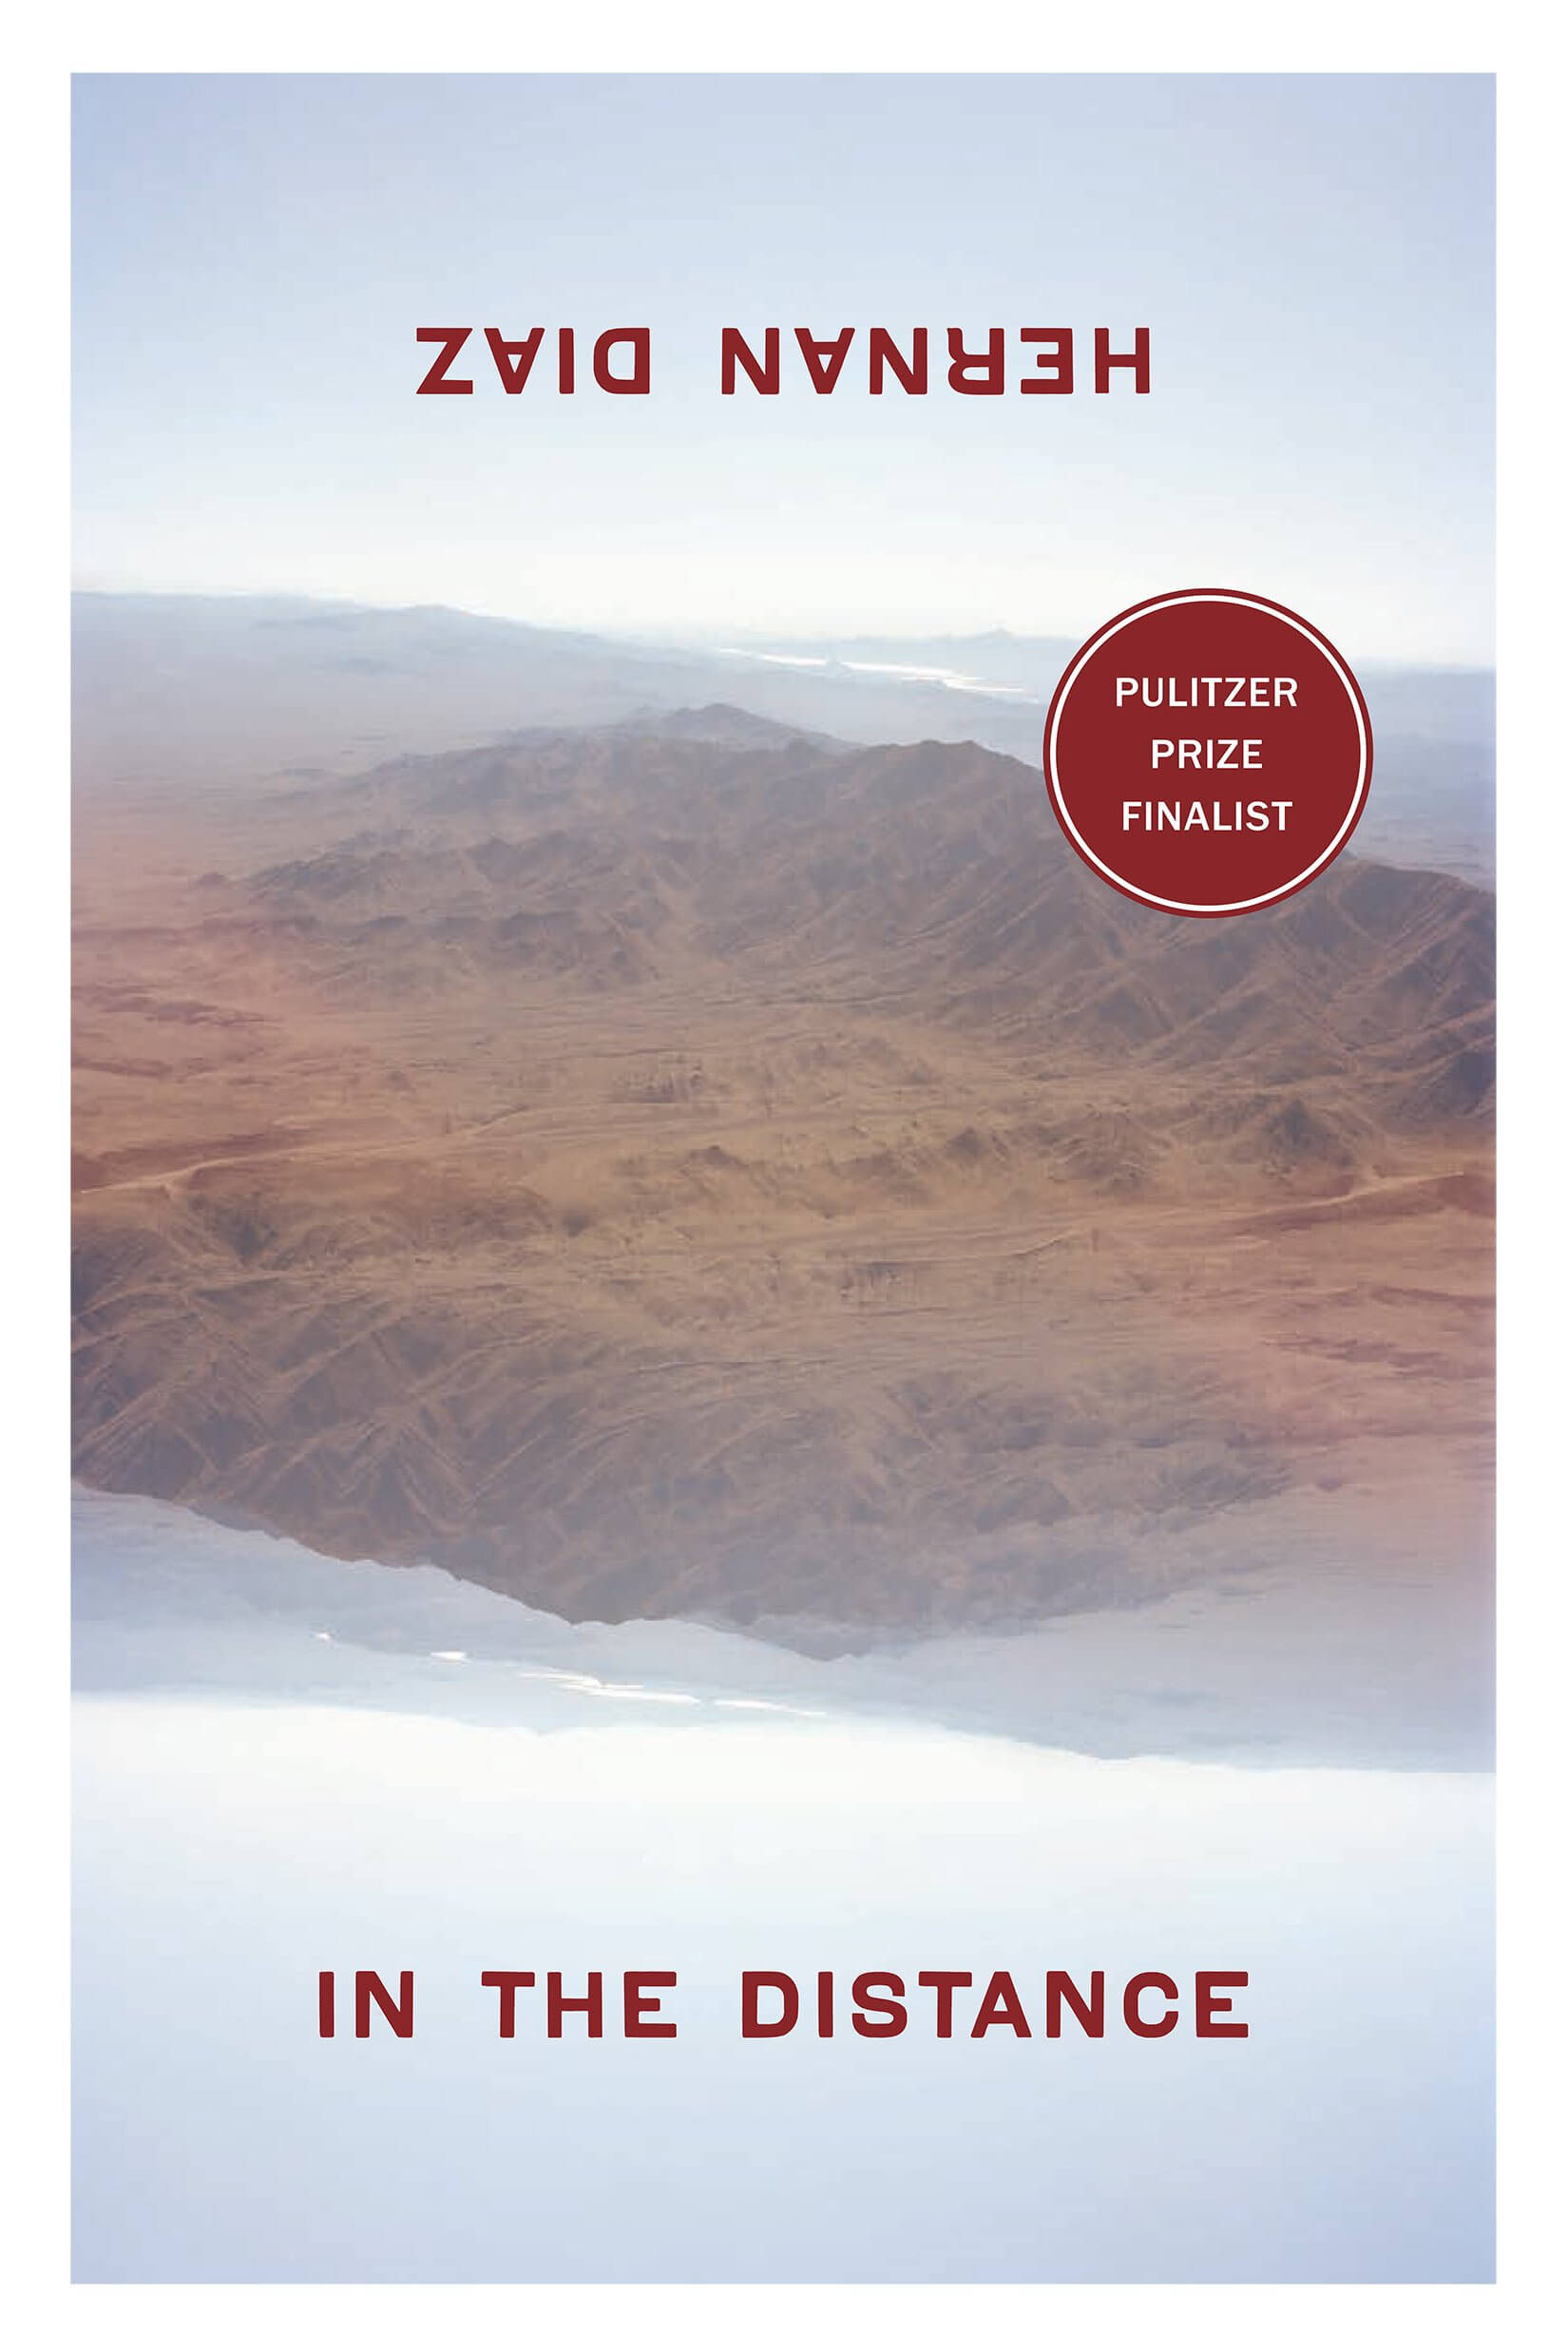 In the distance book cover image